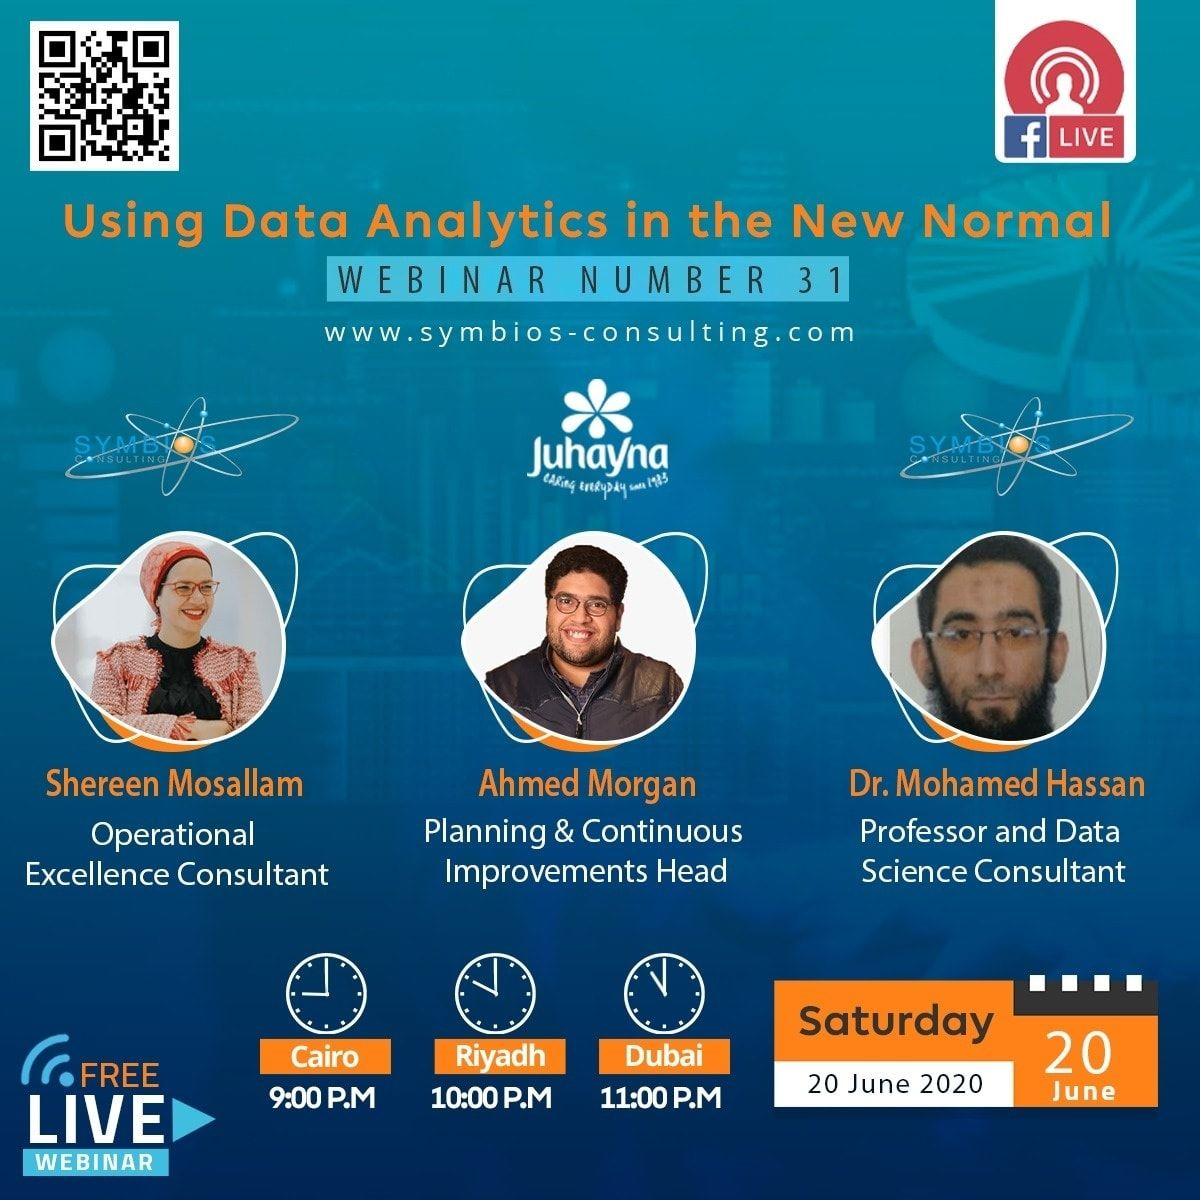 Using Data Analytics in the New Normal